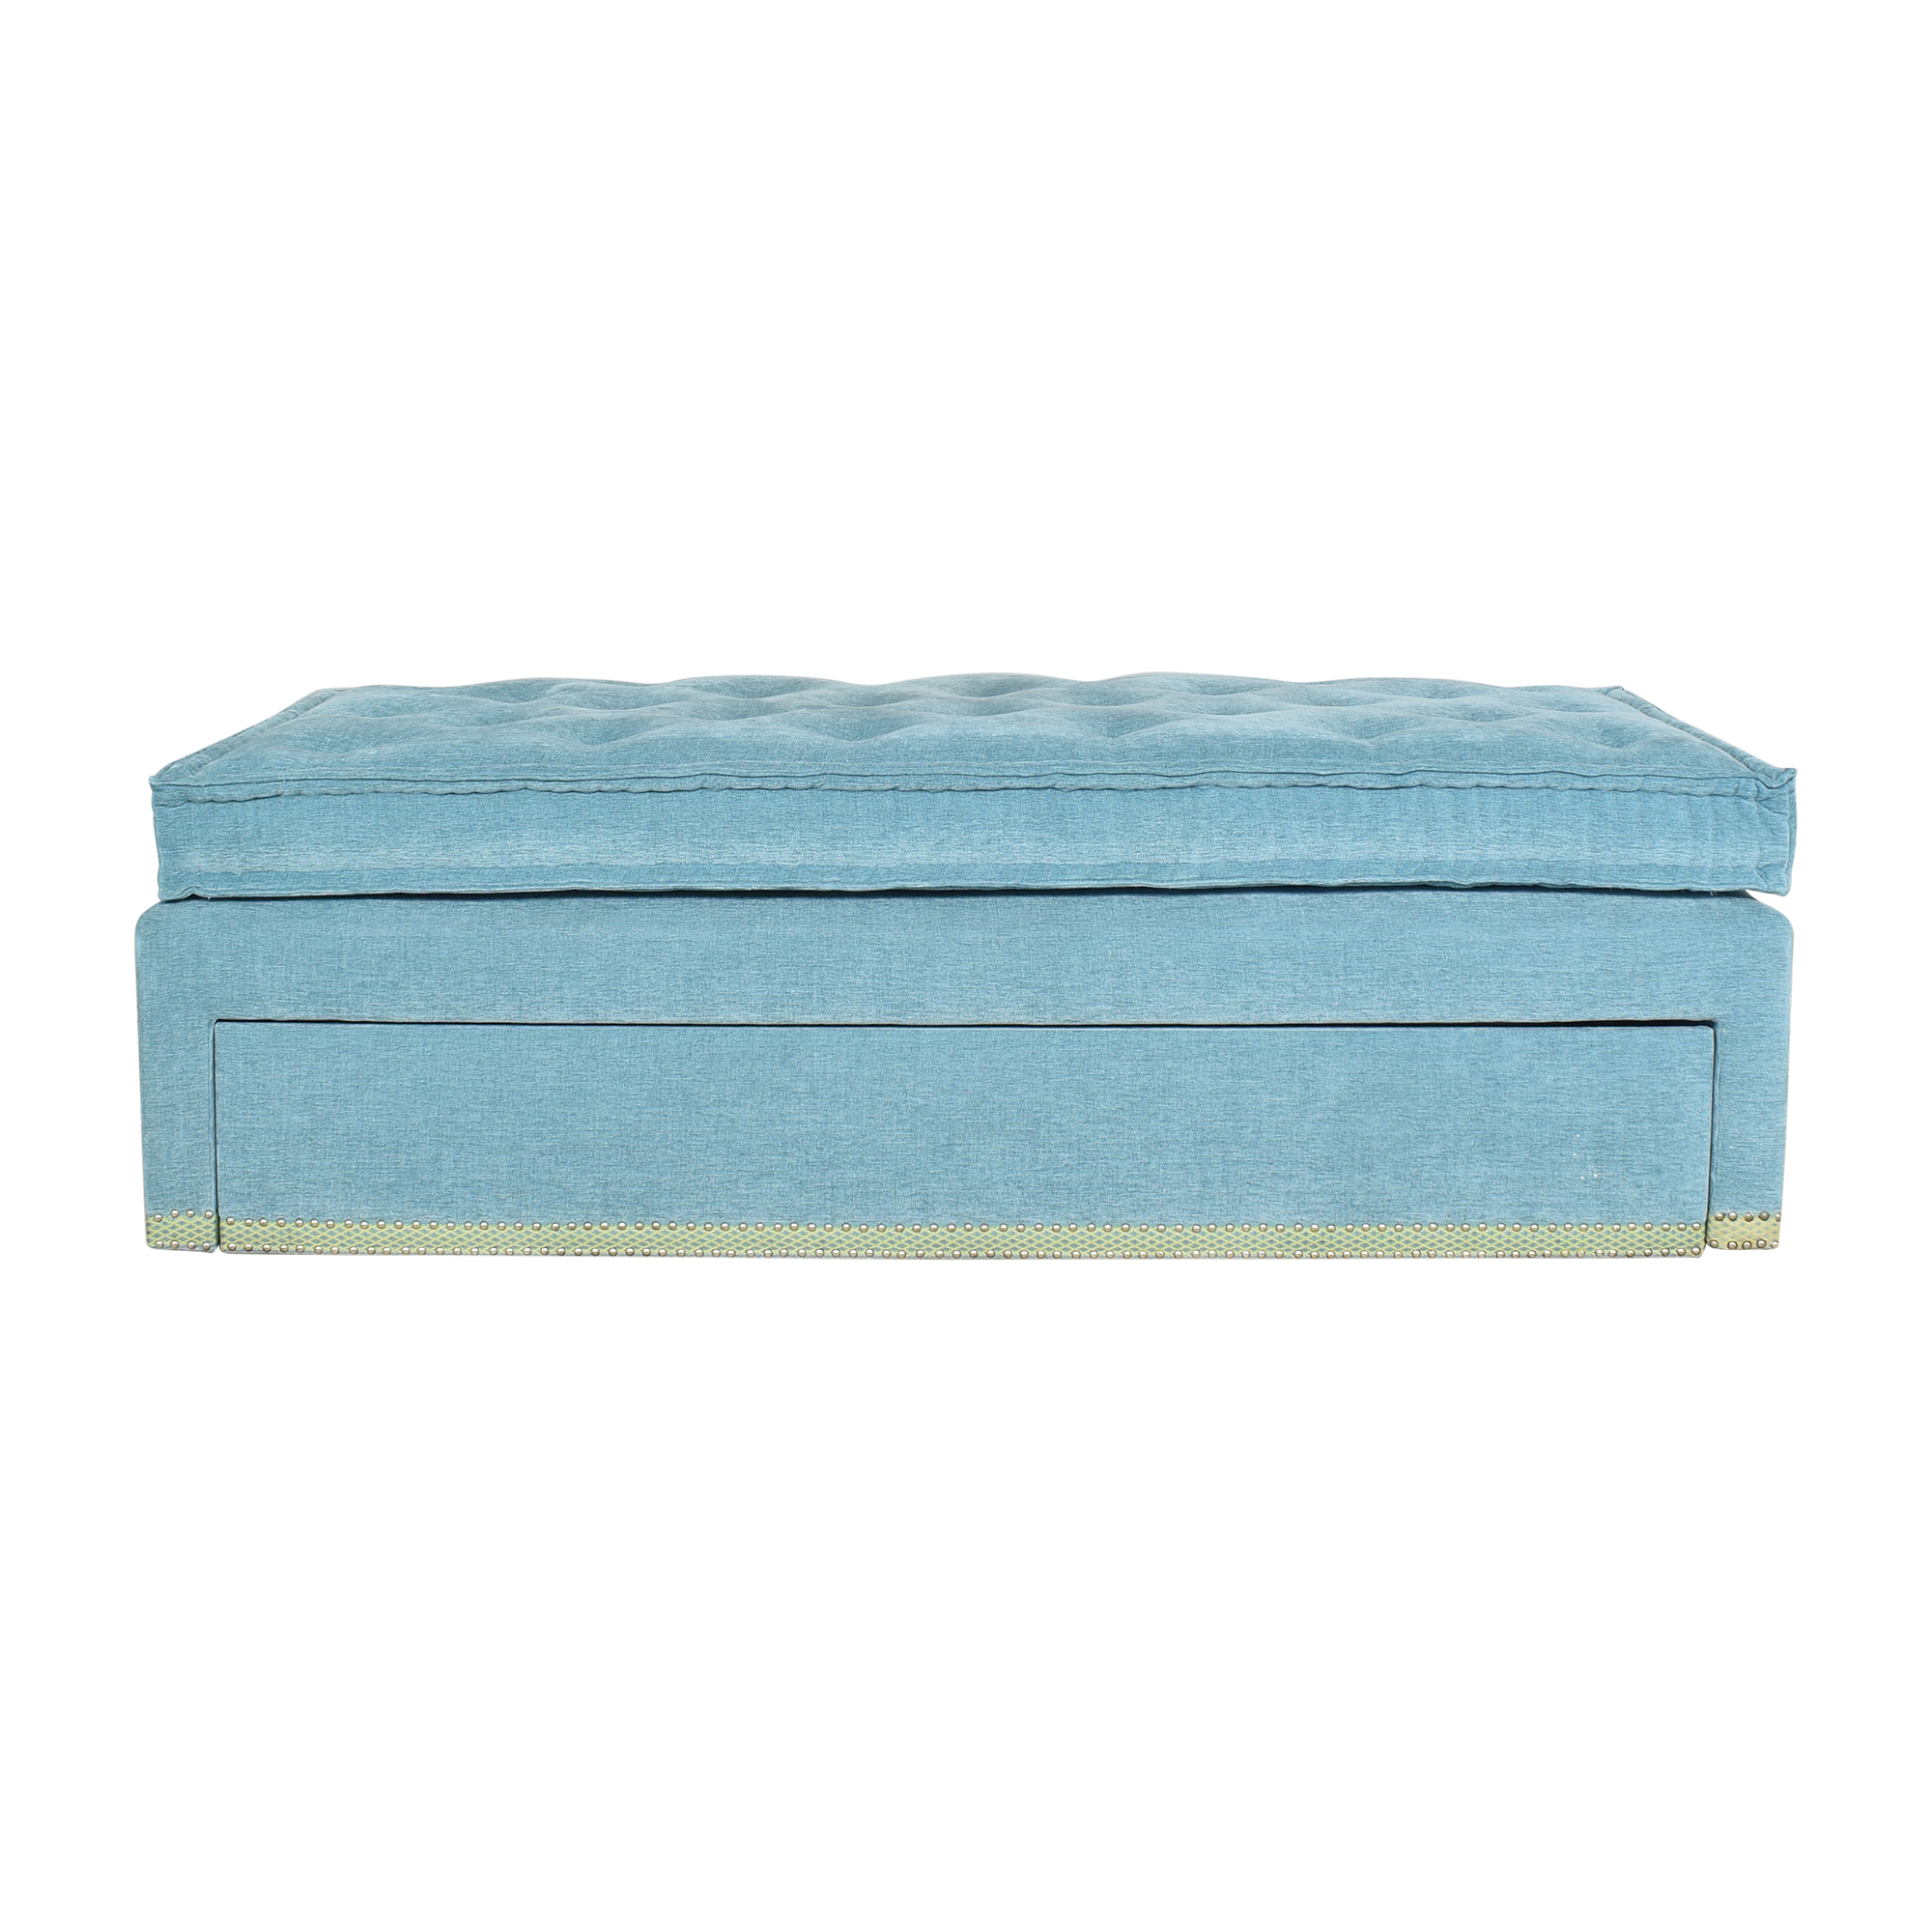 Charles H Beckley Charles H Beckley Daybed With Pop-Up Trundle